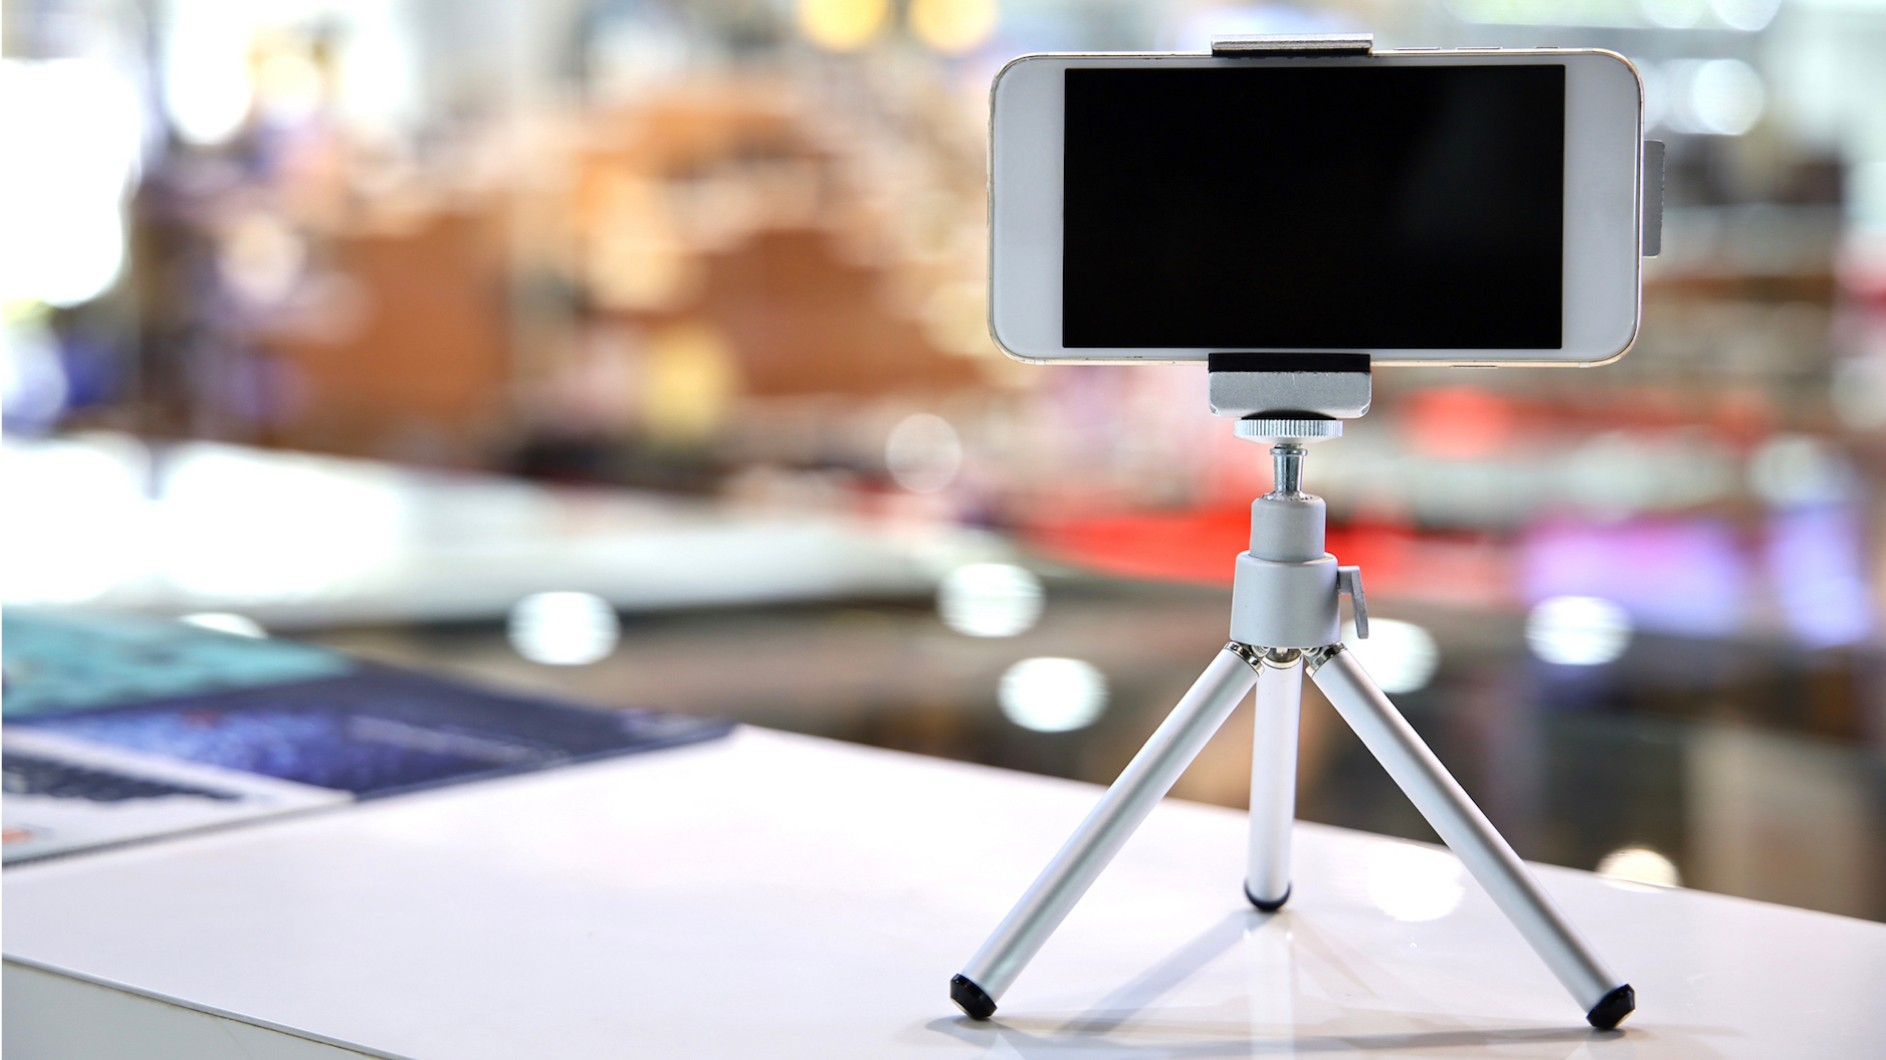 Smartphone on mini-tripod on a desk in front a blurry background